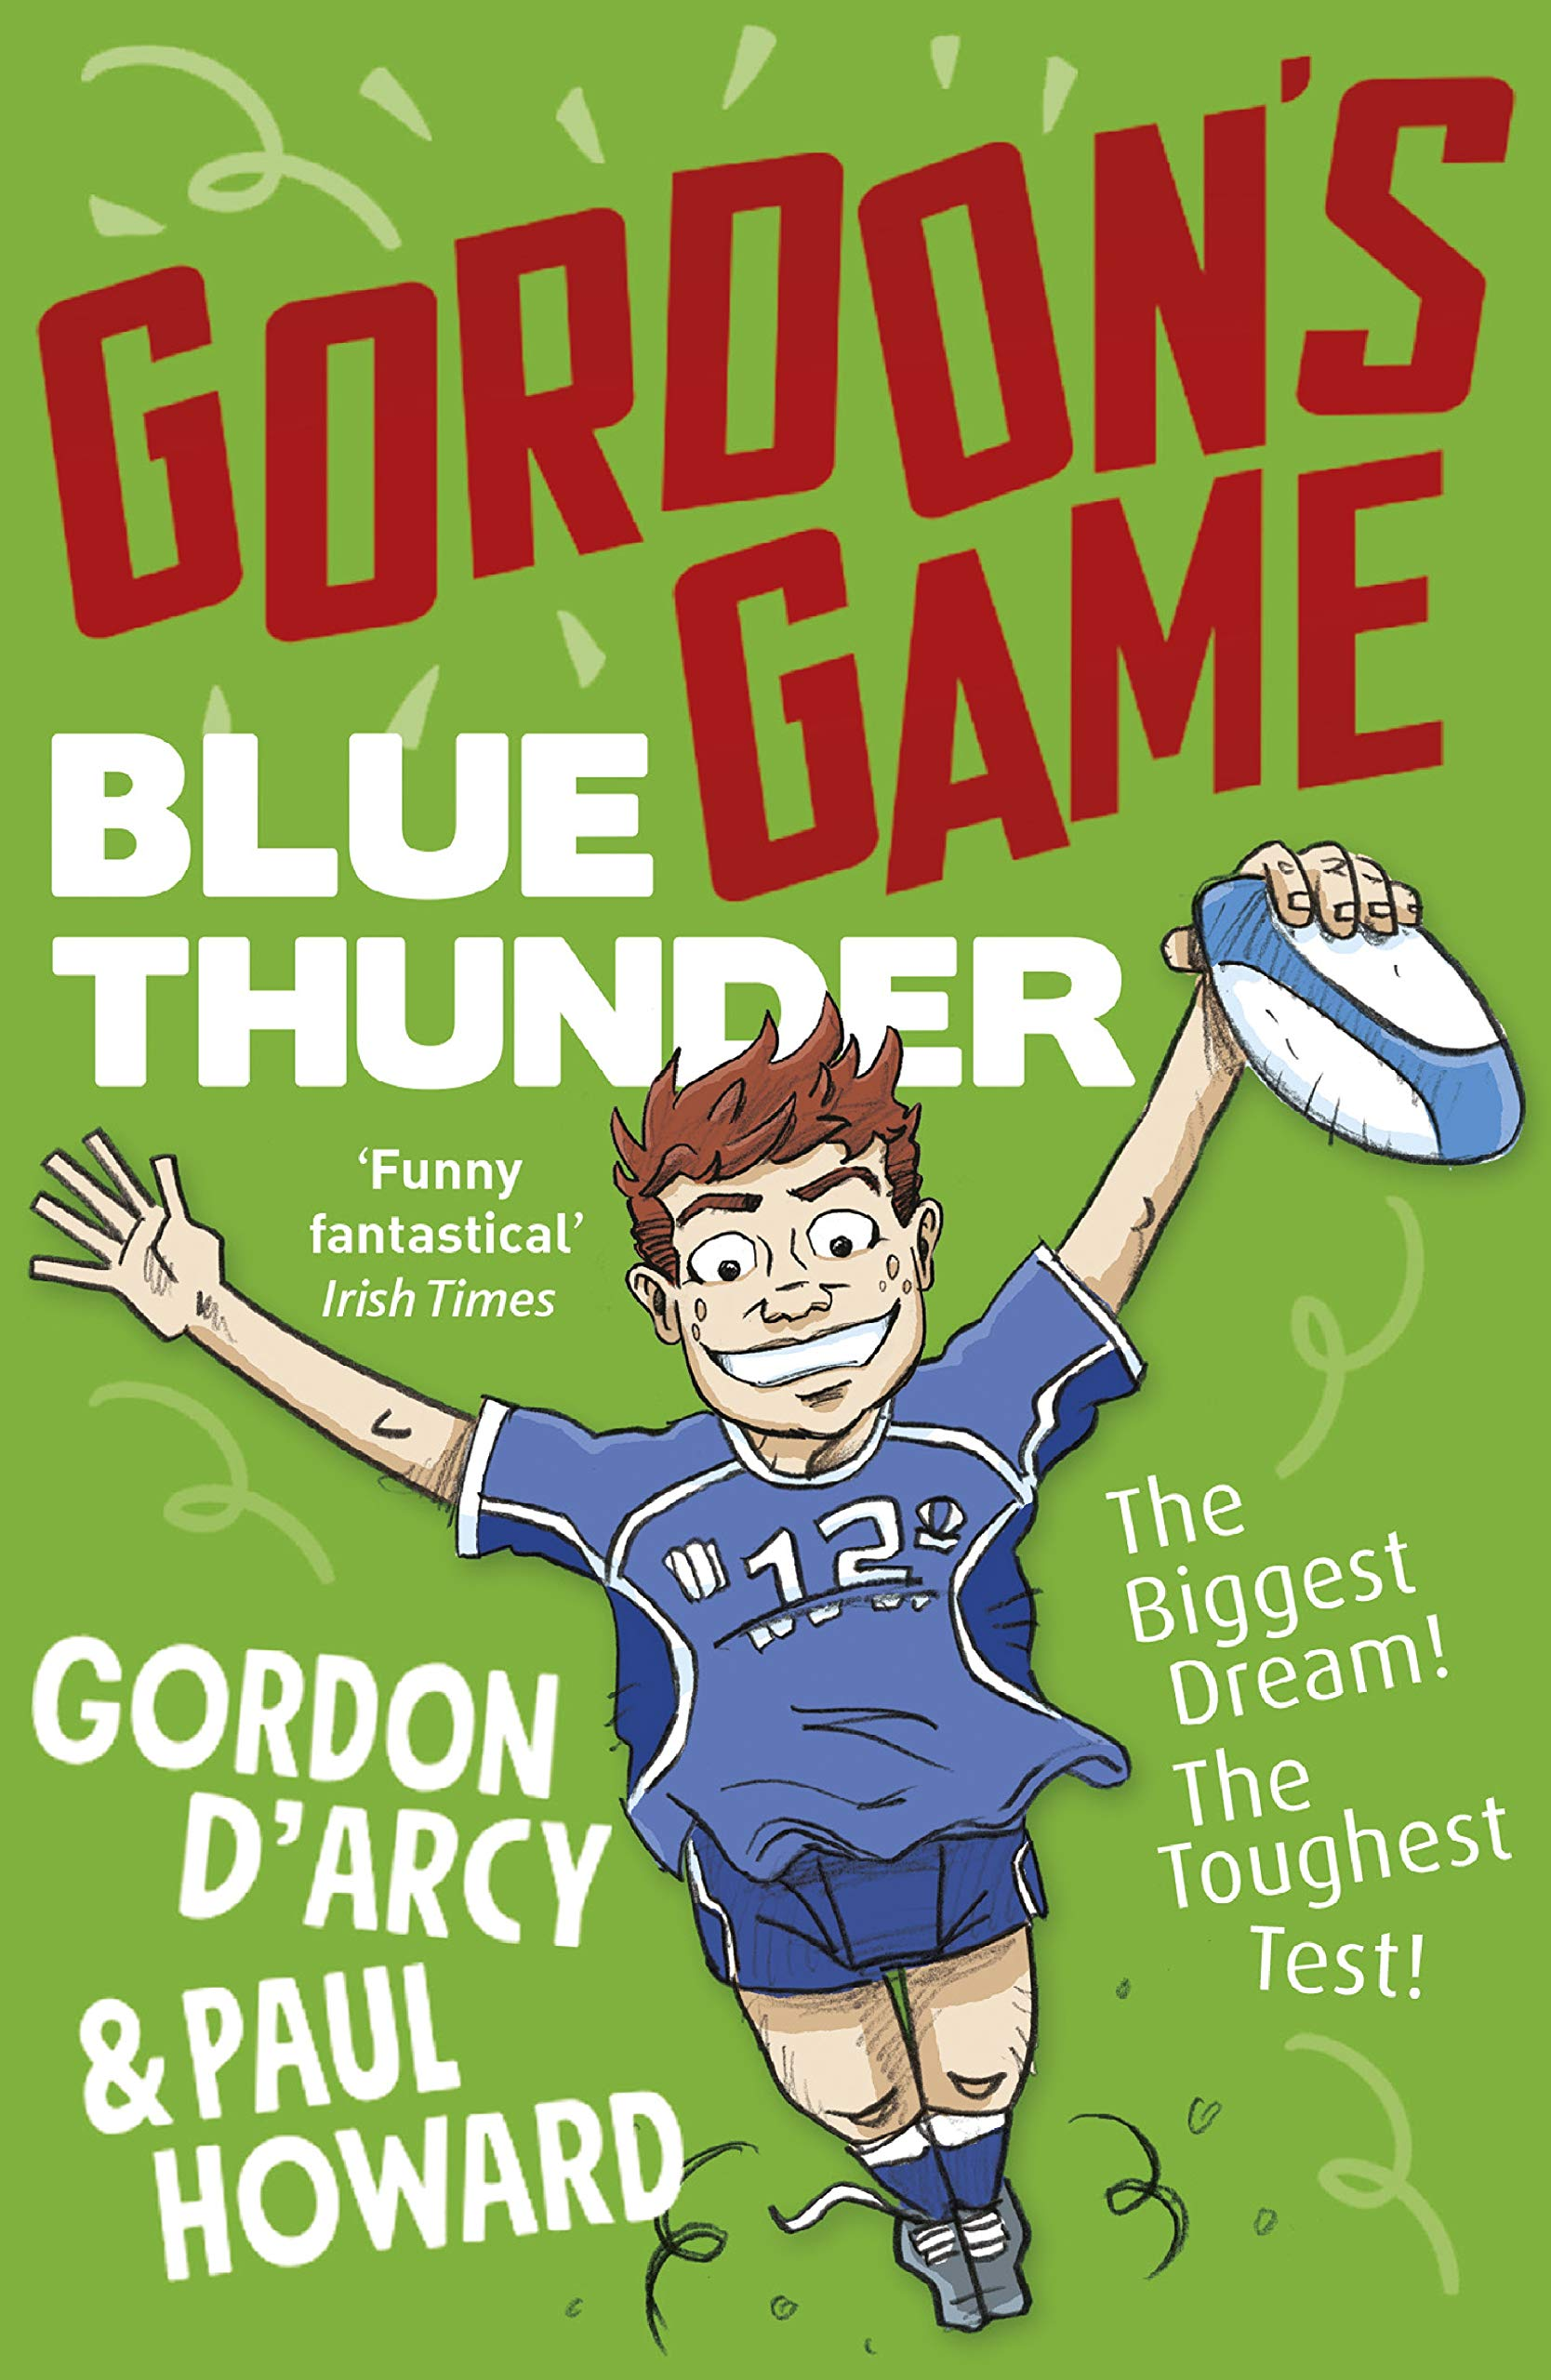 Gordon's Game : Blue Thunder | Gordon D'Arcy and Paul Howard | Charlie Byrne's